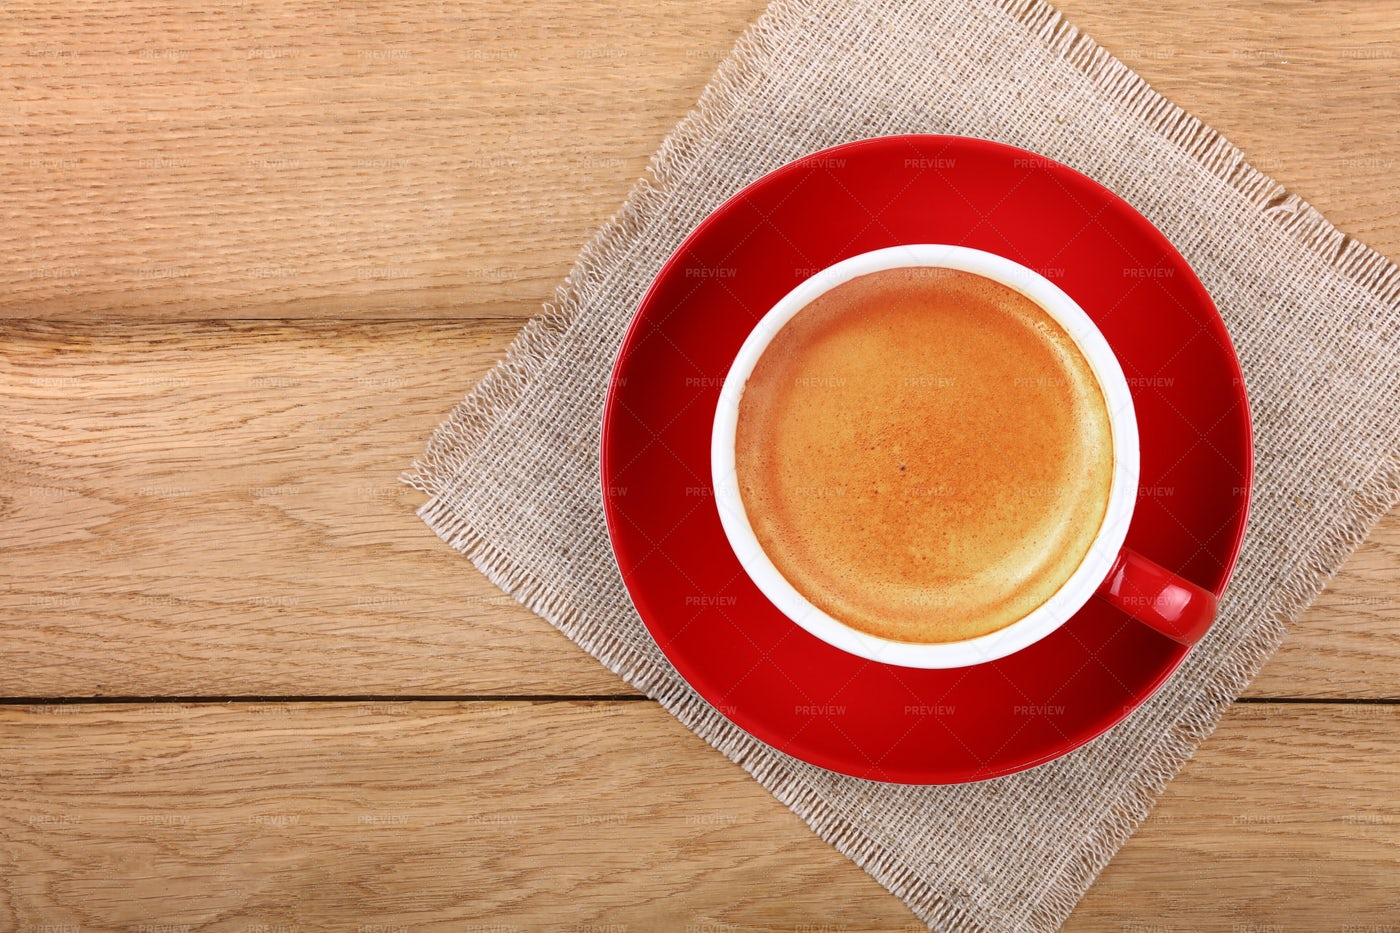 Red Cup Of Espresso Coffee: Stock Photos